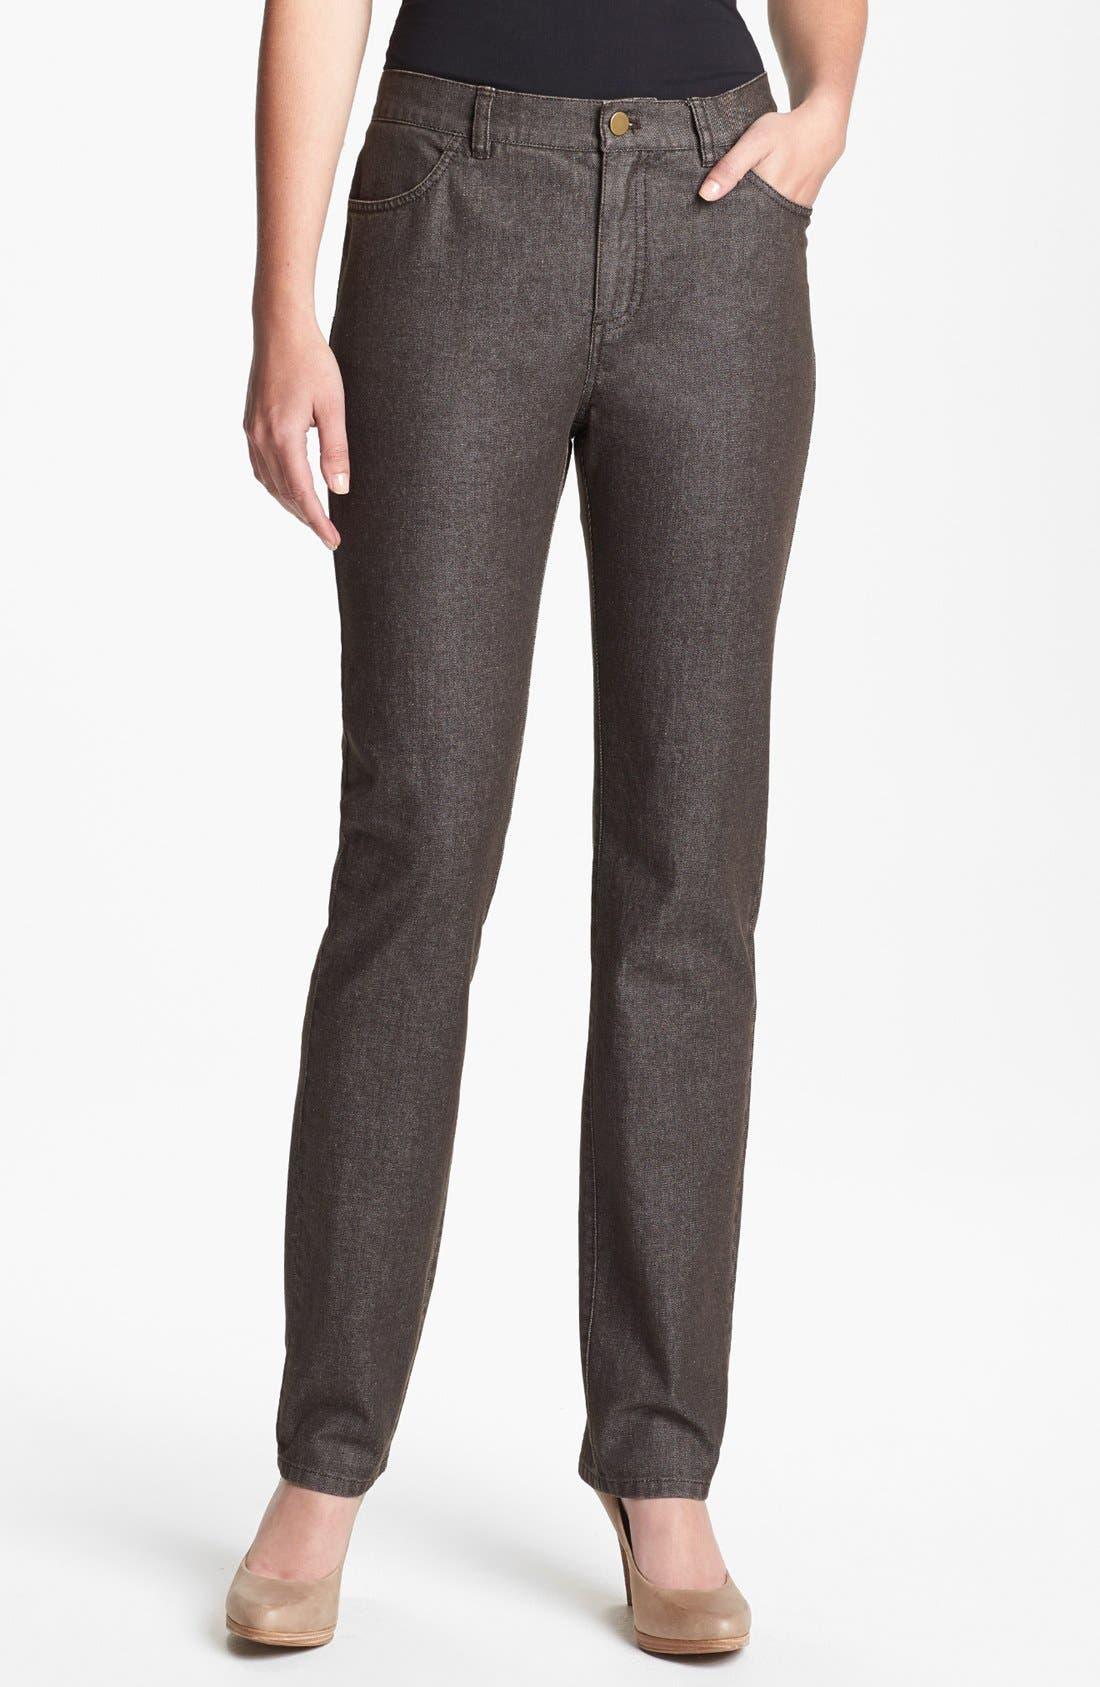 Alternate Image 1 Selected - Lafayette 148 New York Curvy Fit Slim Leg Jeans